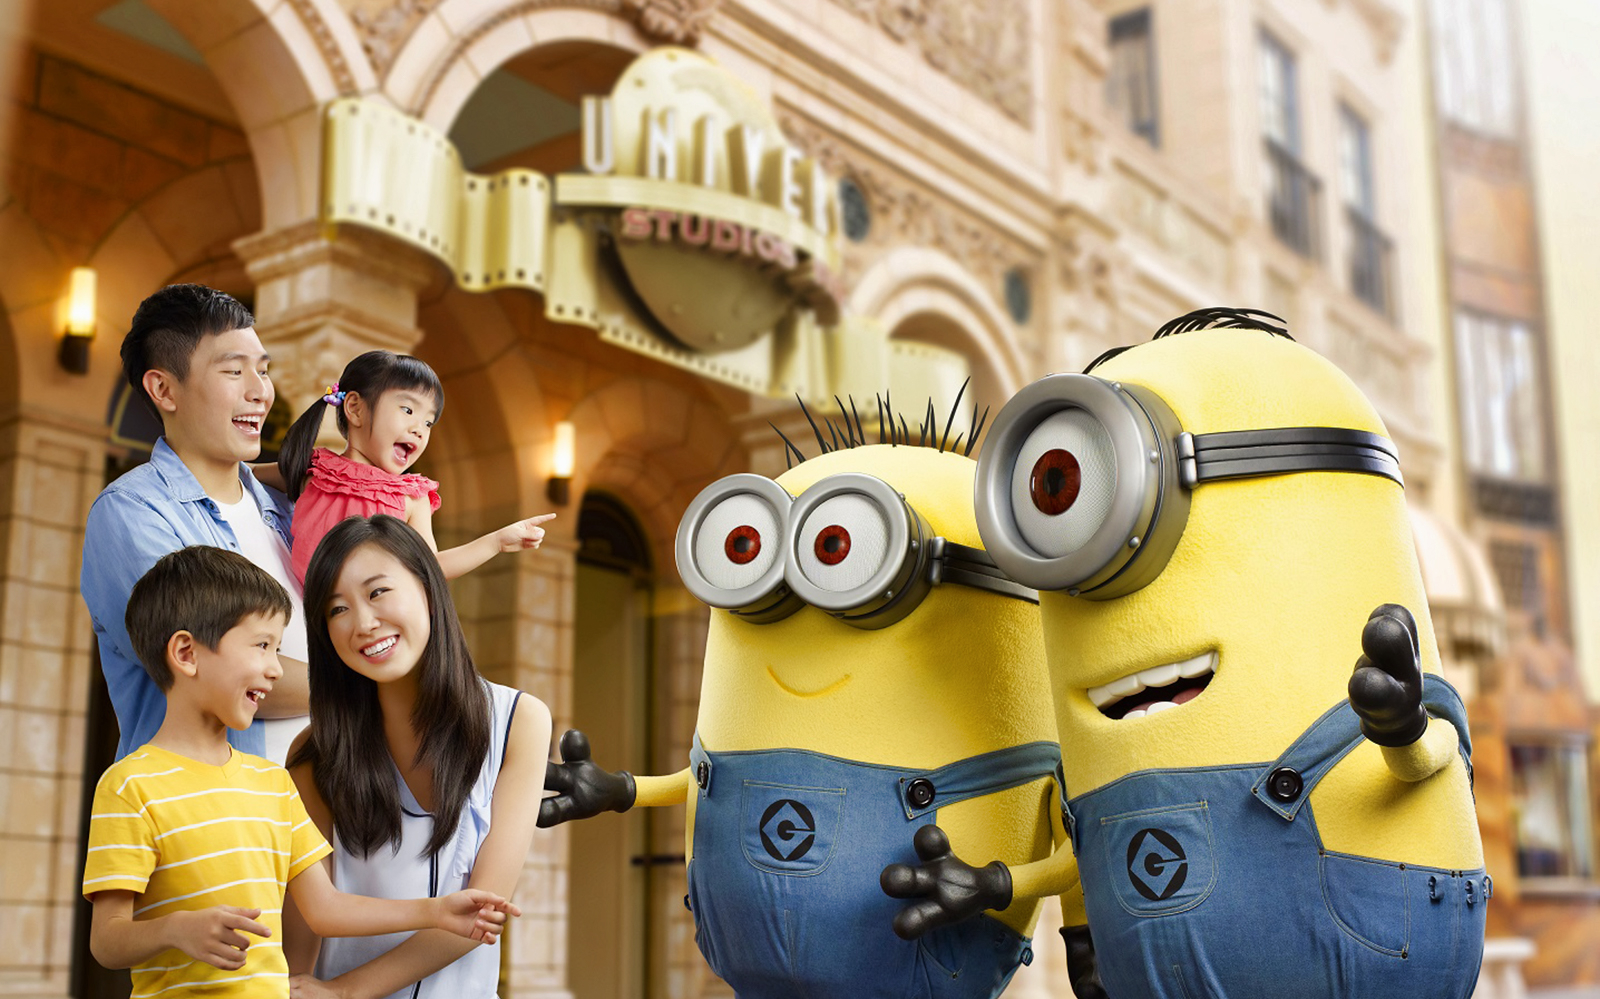 C6849793 5877 4b25 bd49 a2ef2dc05385 7442 singapore universal studio singapore one day ticket 06